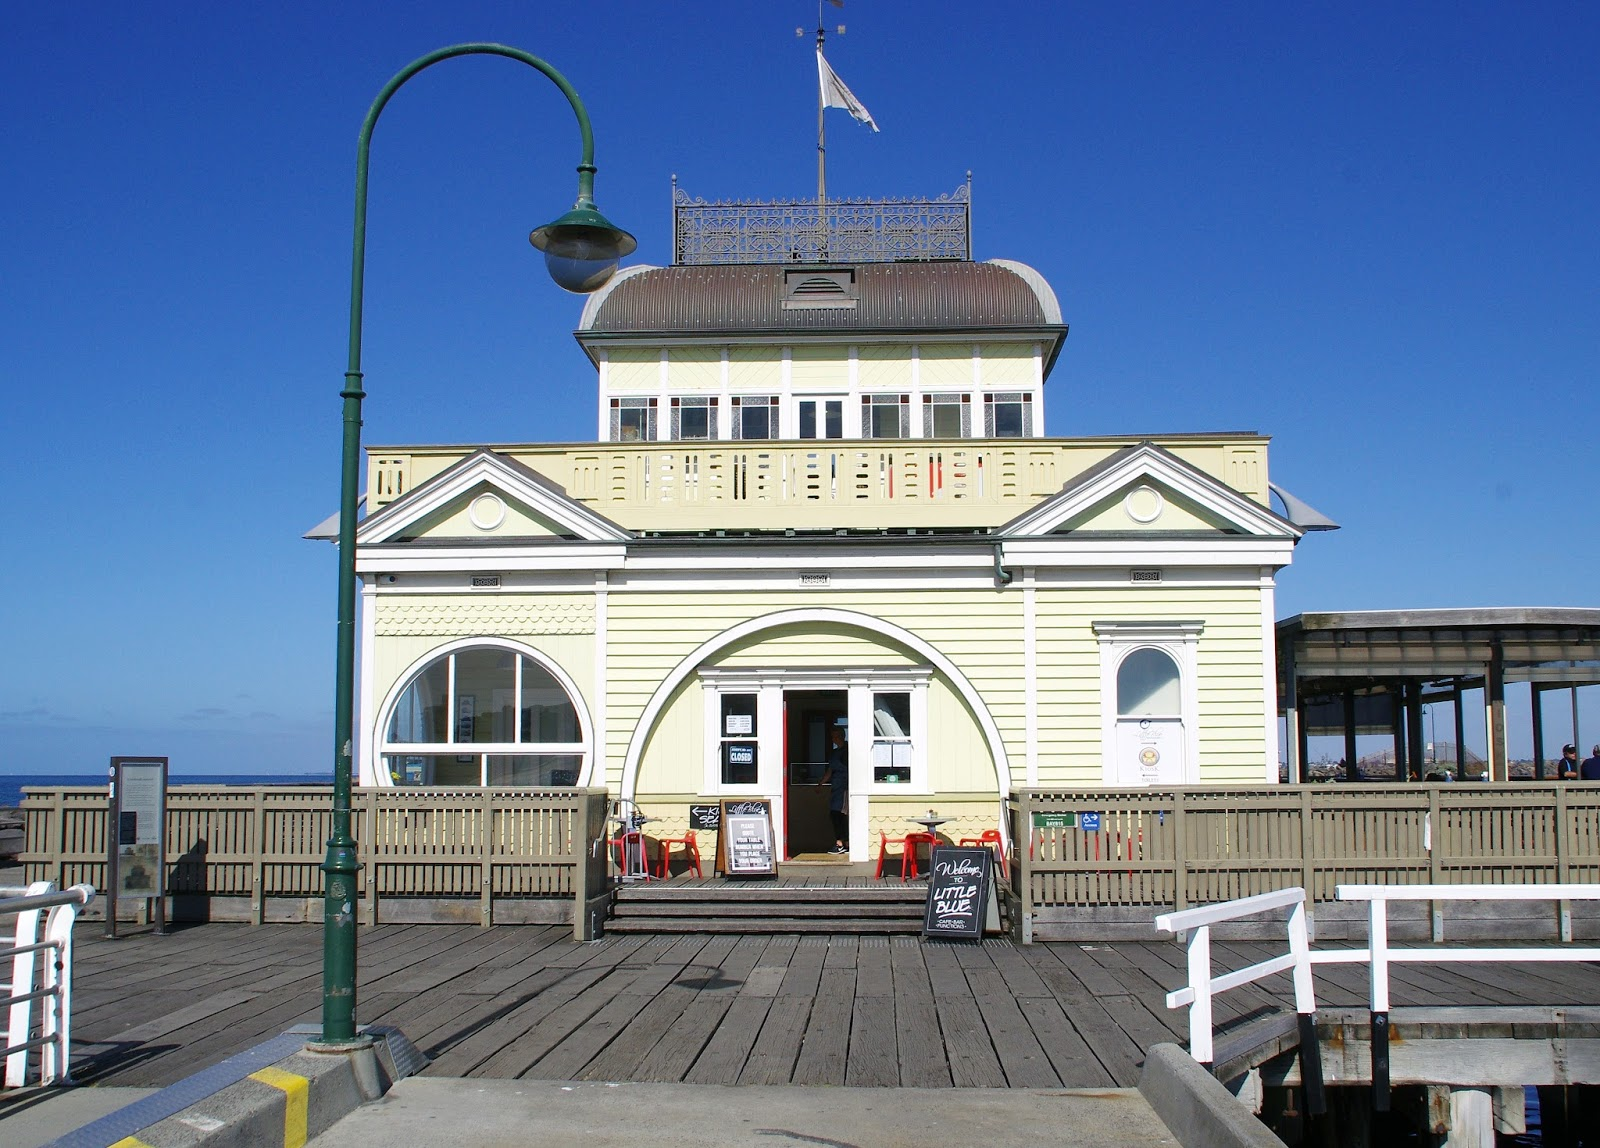 Pavillion on St Kilda Pier Melbourne